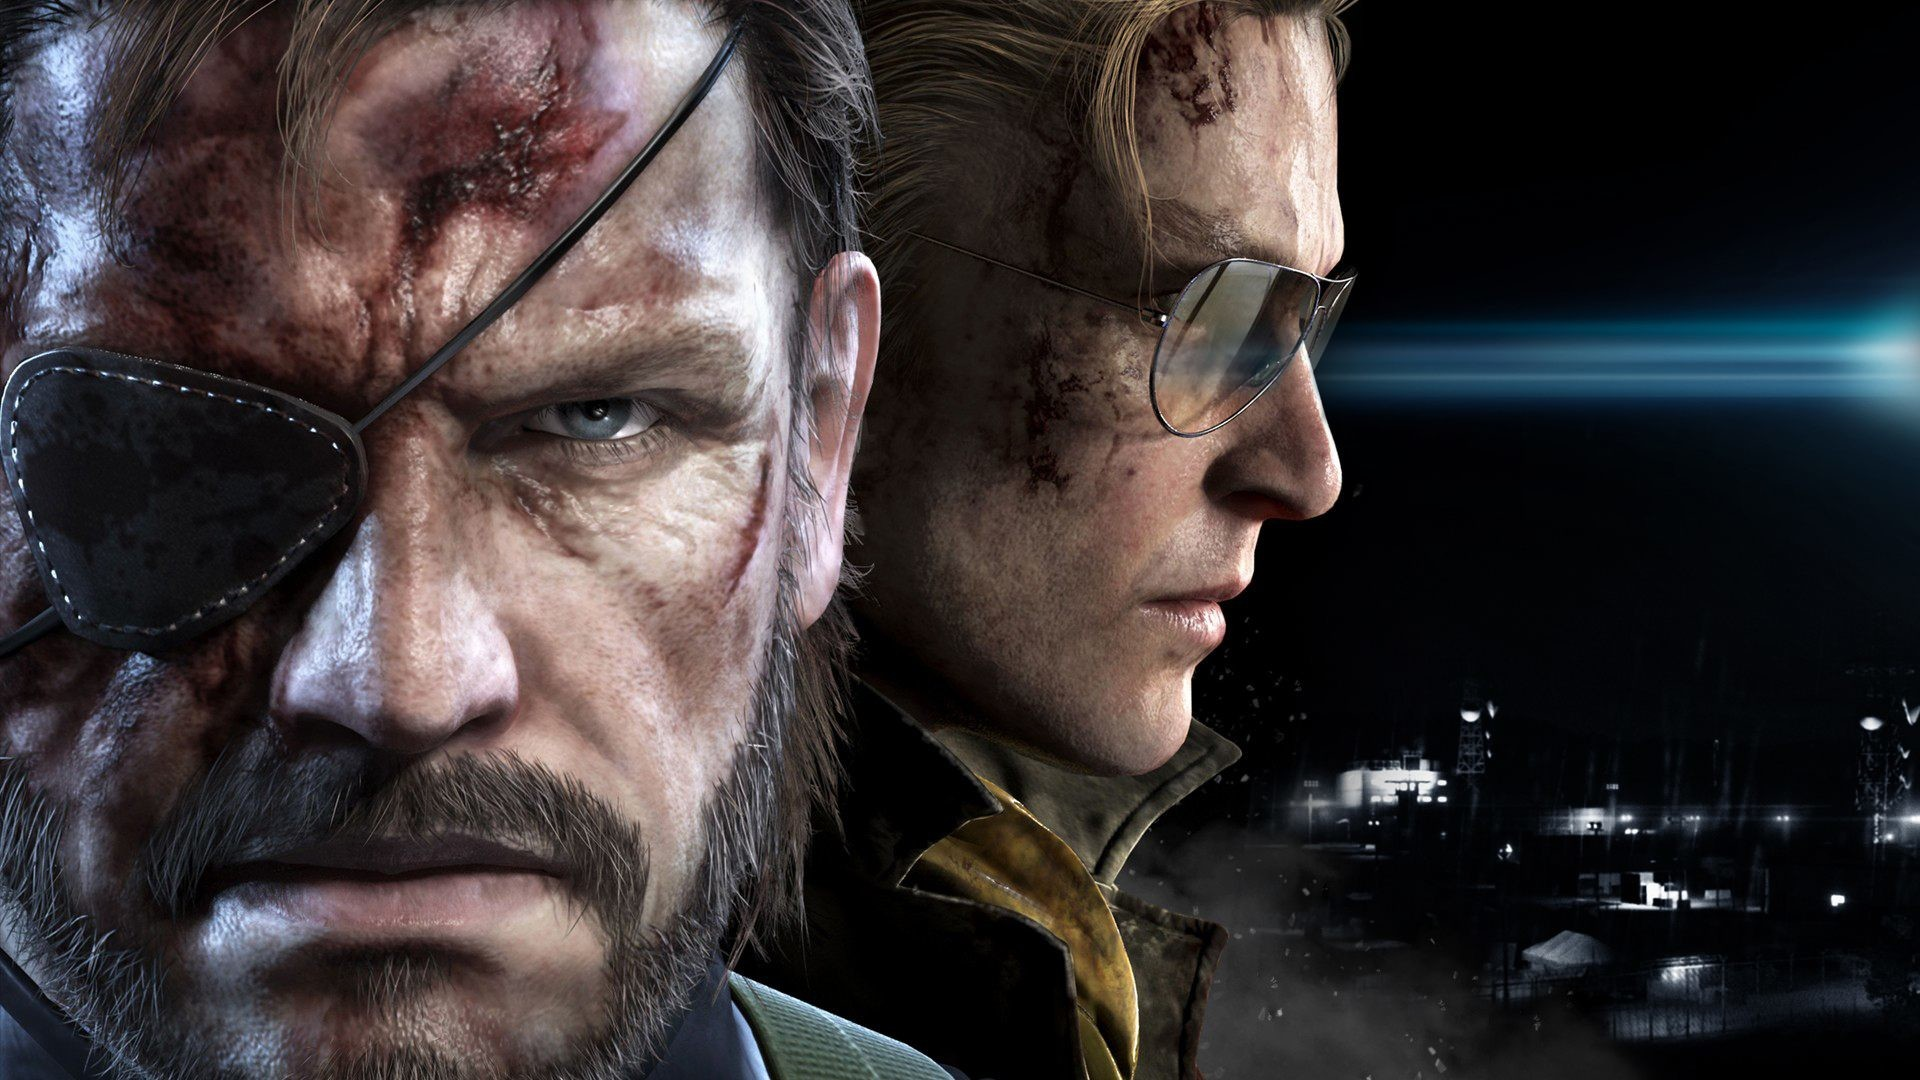 … Wallpaper Metal Gear Solid V: The Phantom Pain HD pictures